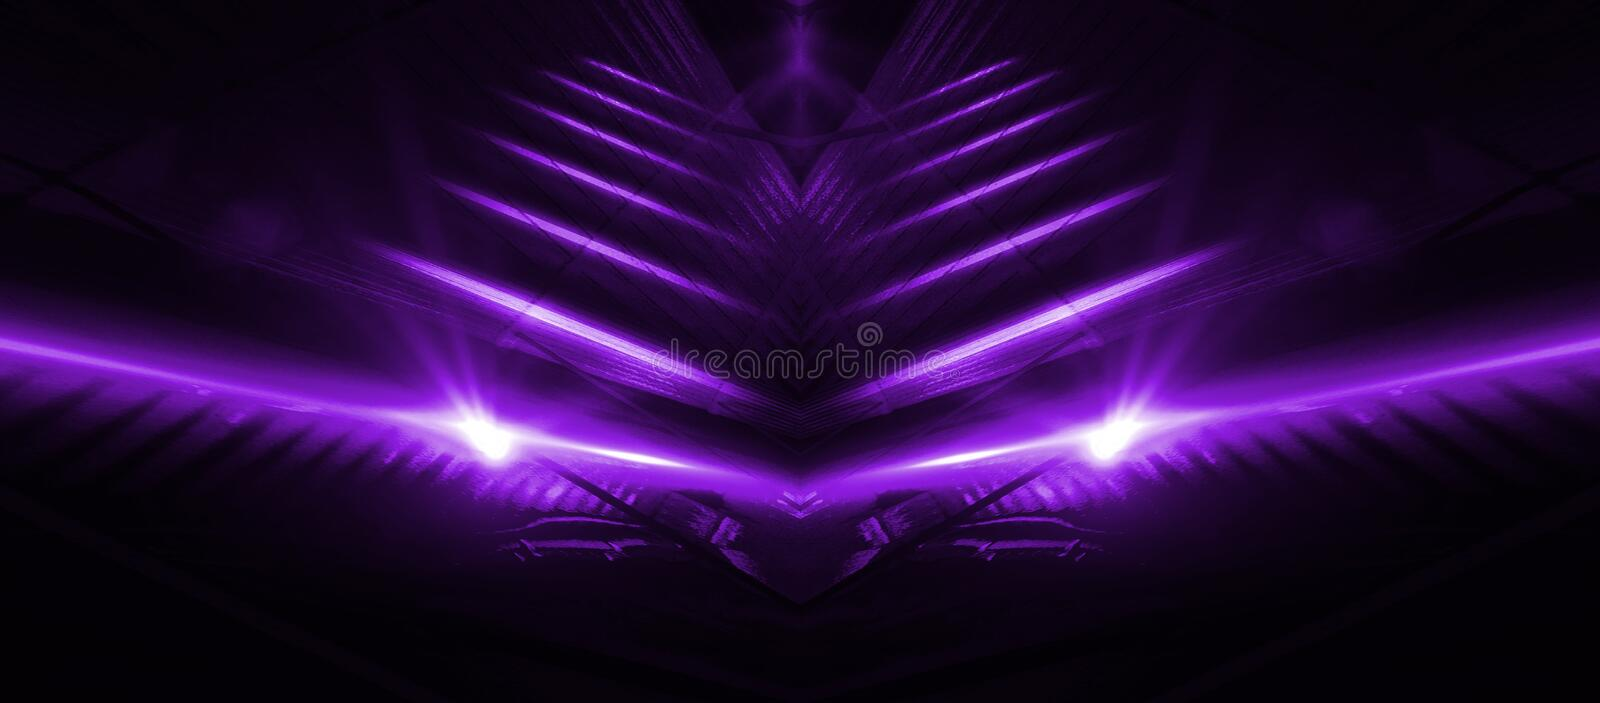 Empty stage background in purple color, spotlights, neon rays. royalty free illustration